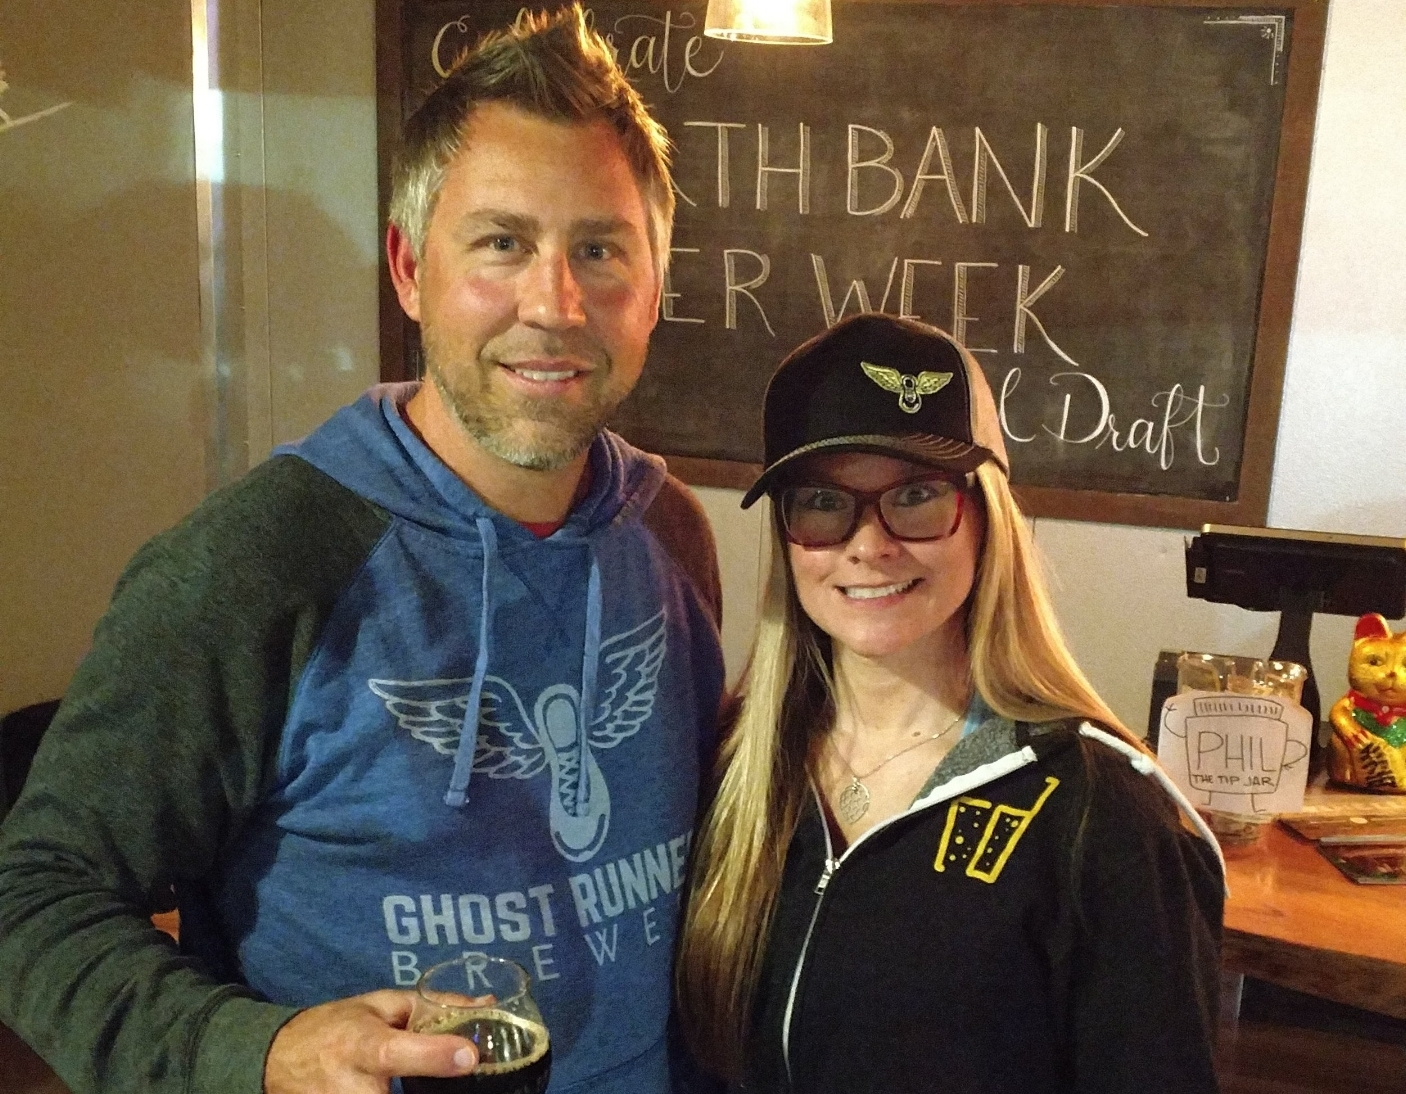 Brewers' Stories - Jeff from Ghost Runners Brewery